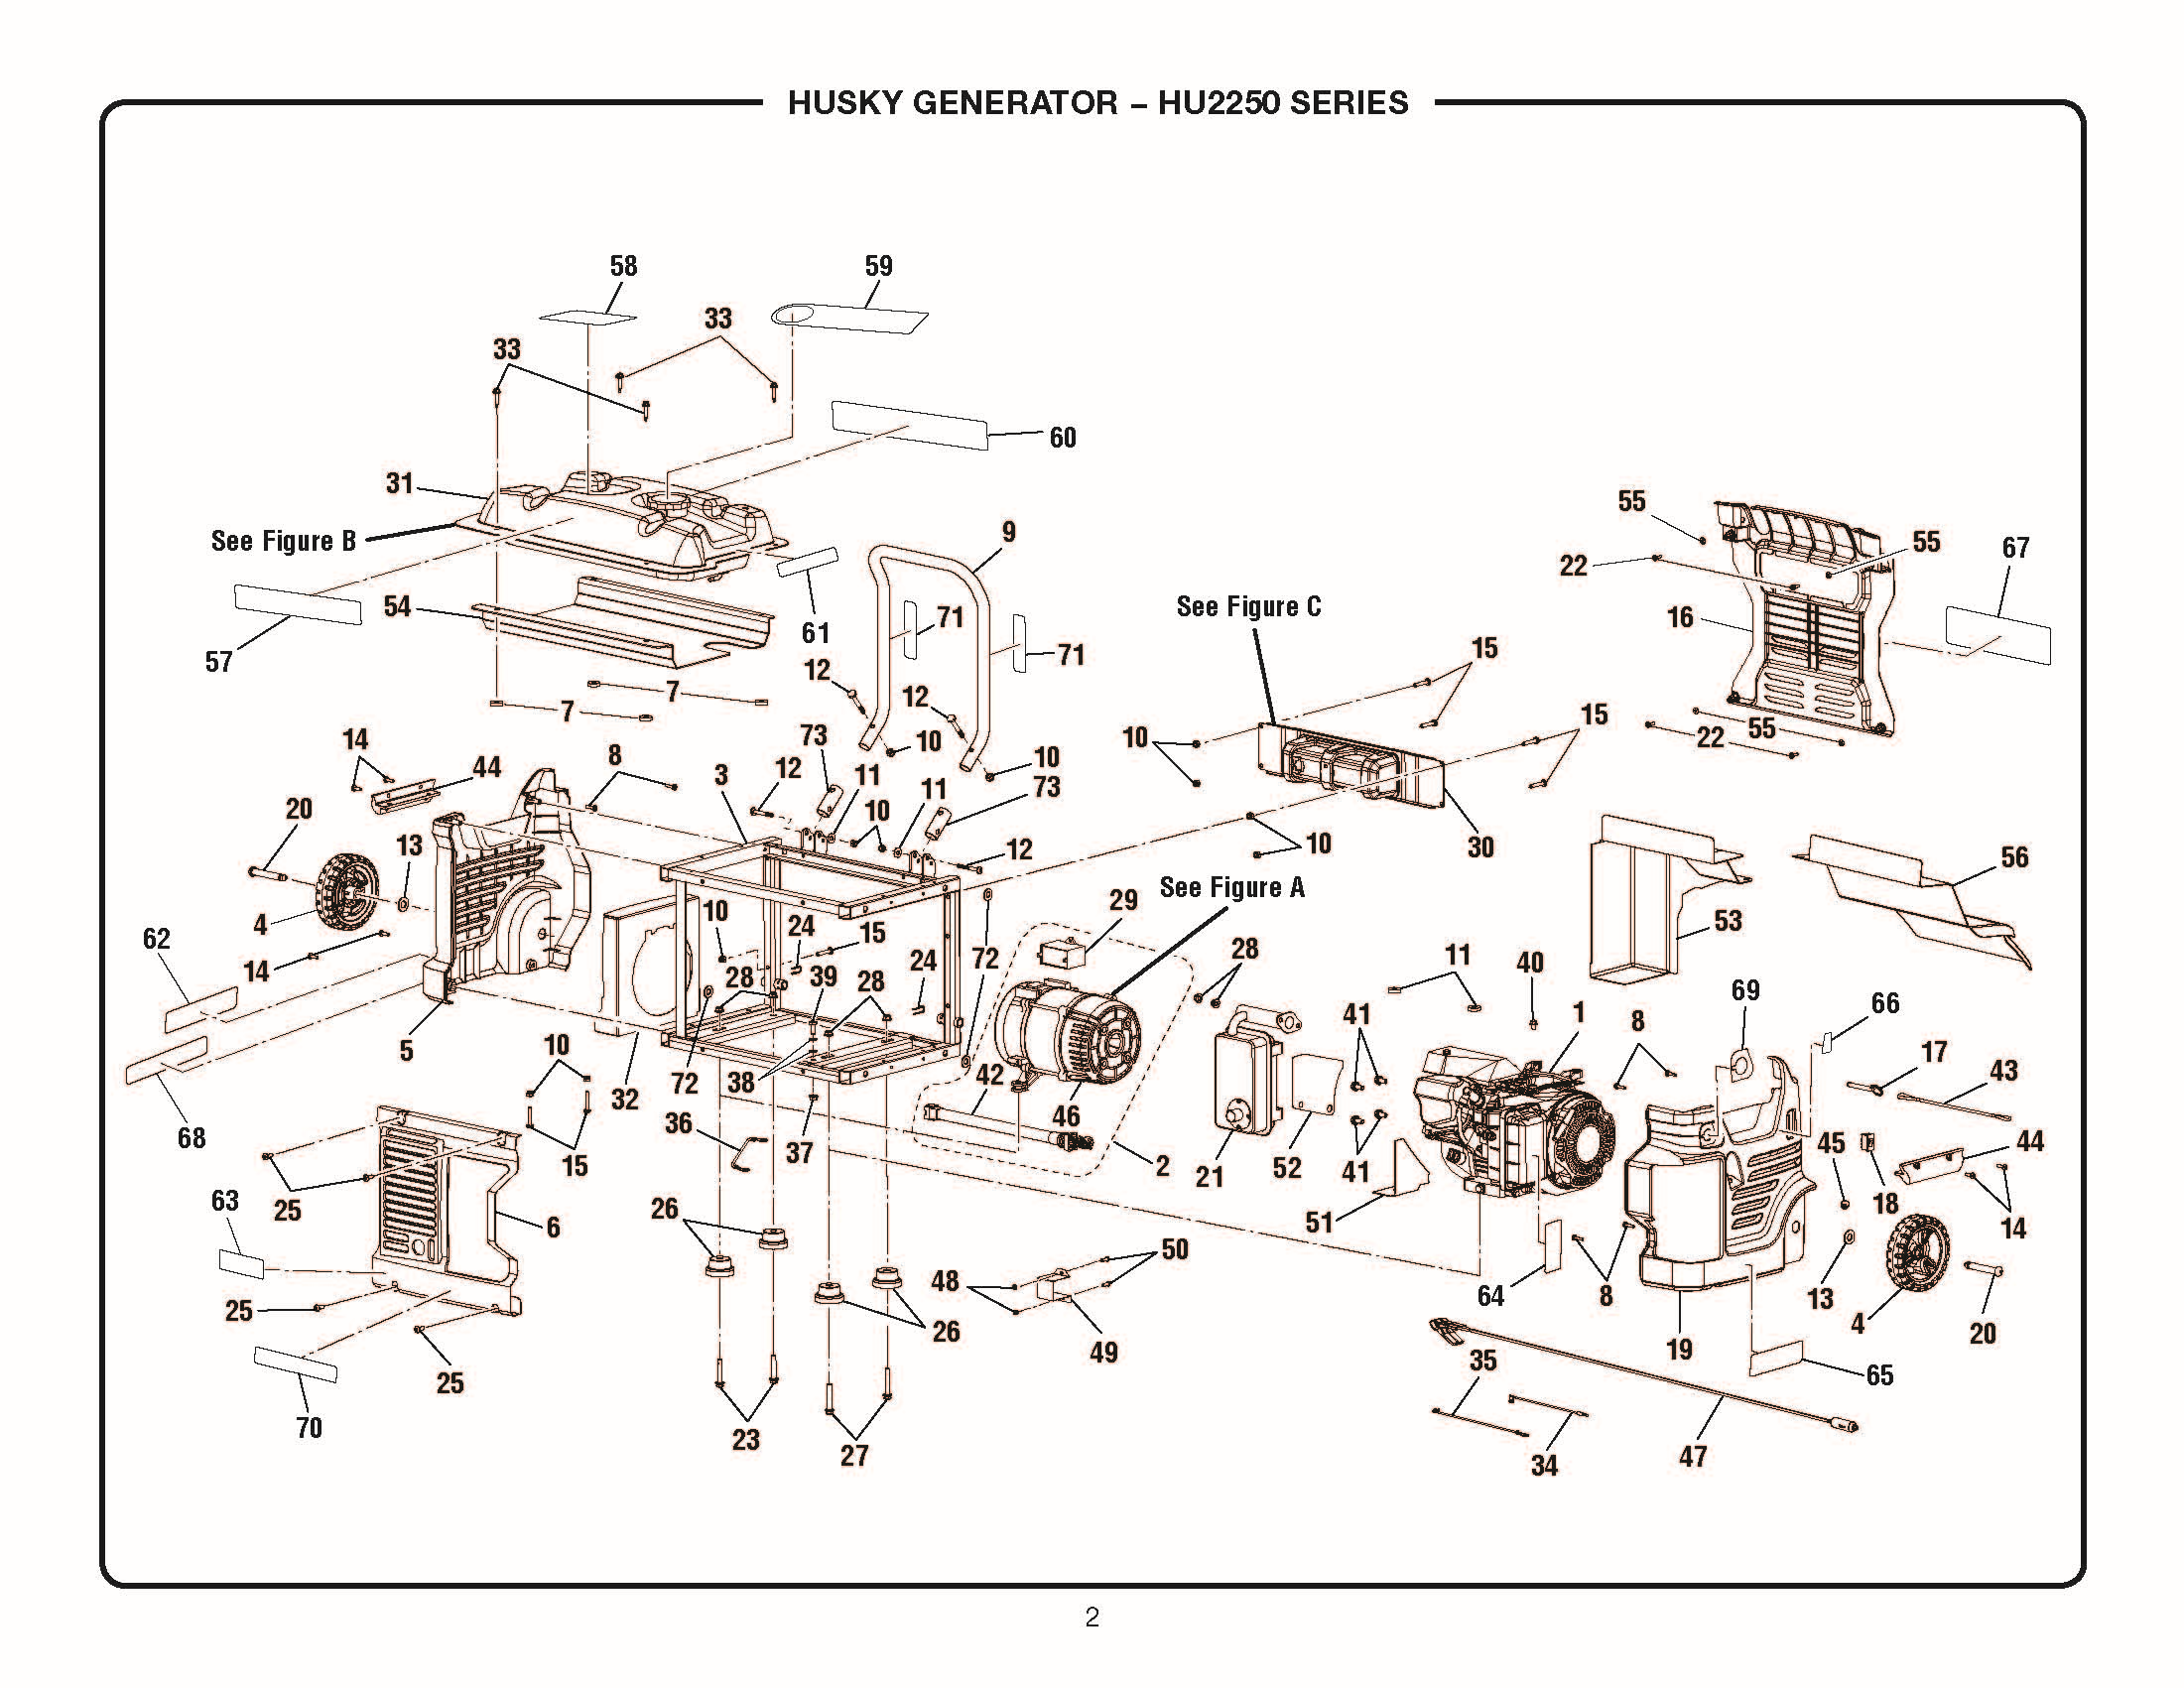 HU2250_frame_schematic husky hu2250 repair parts husky 5000 watt generator wiring diagram at mr168.co